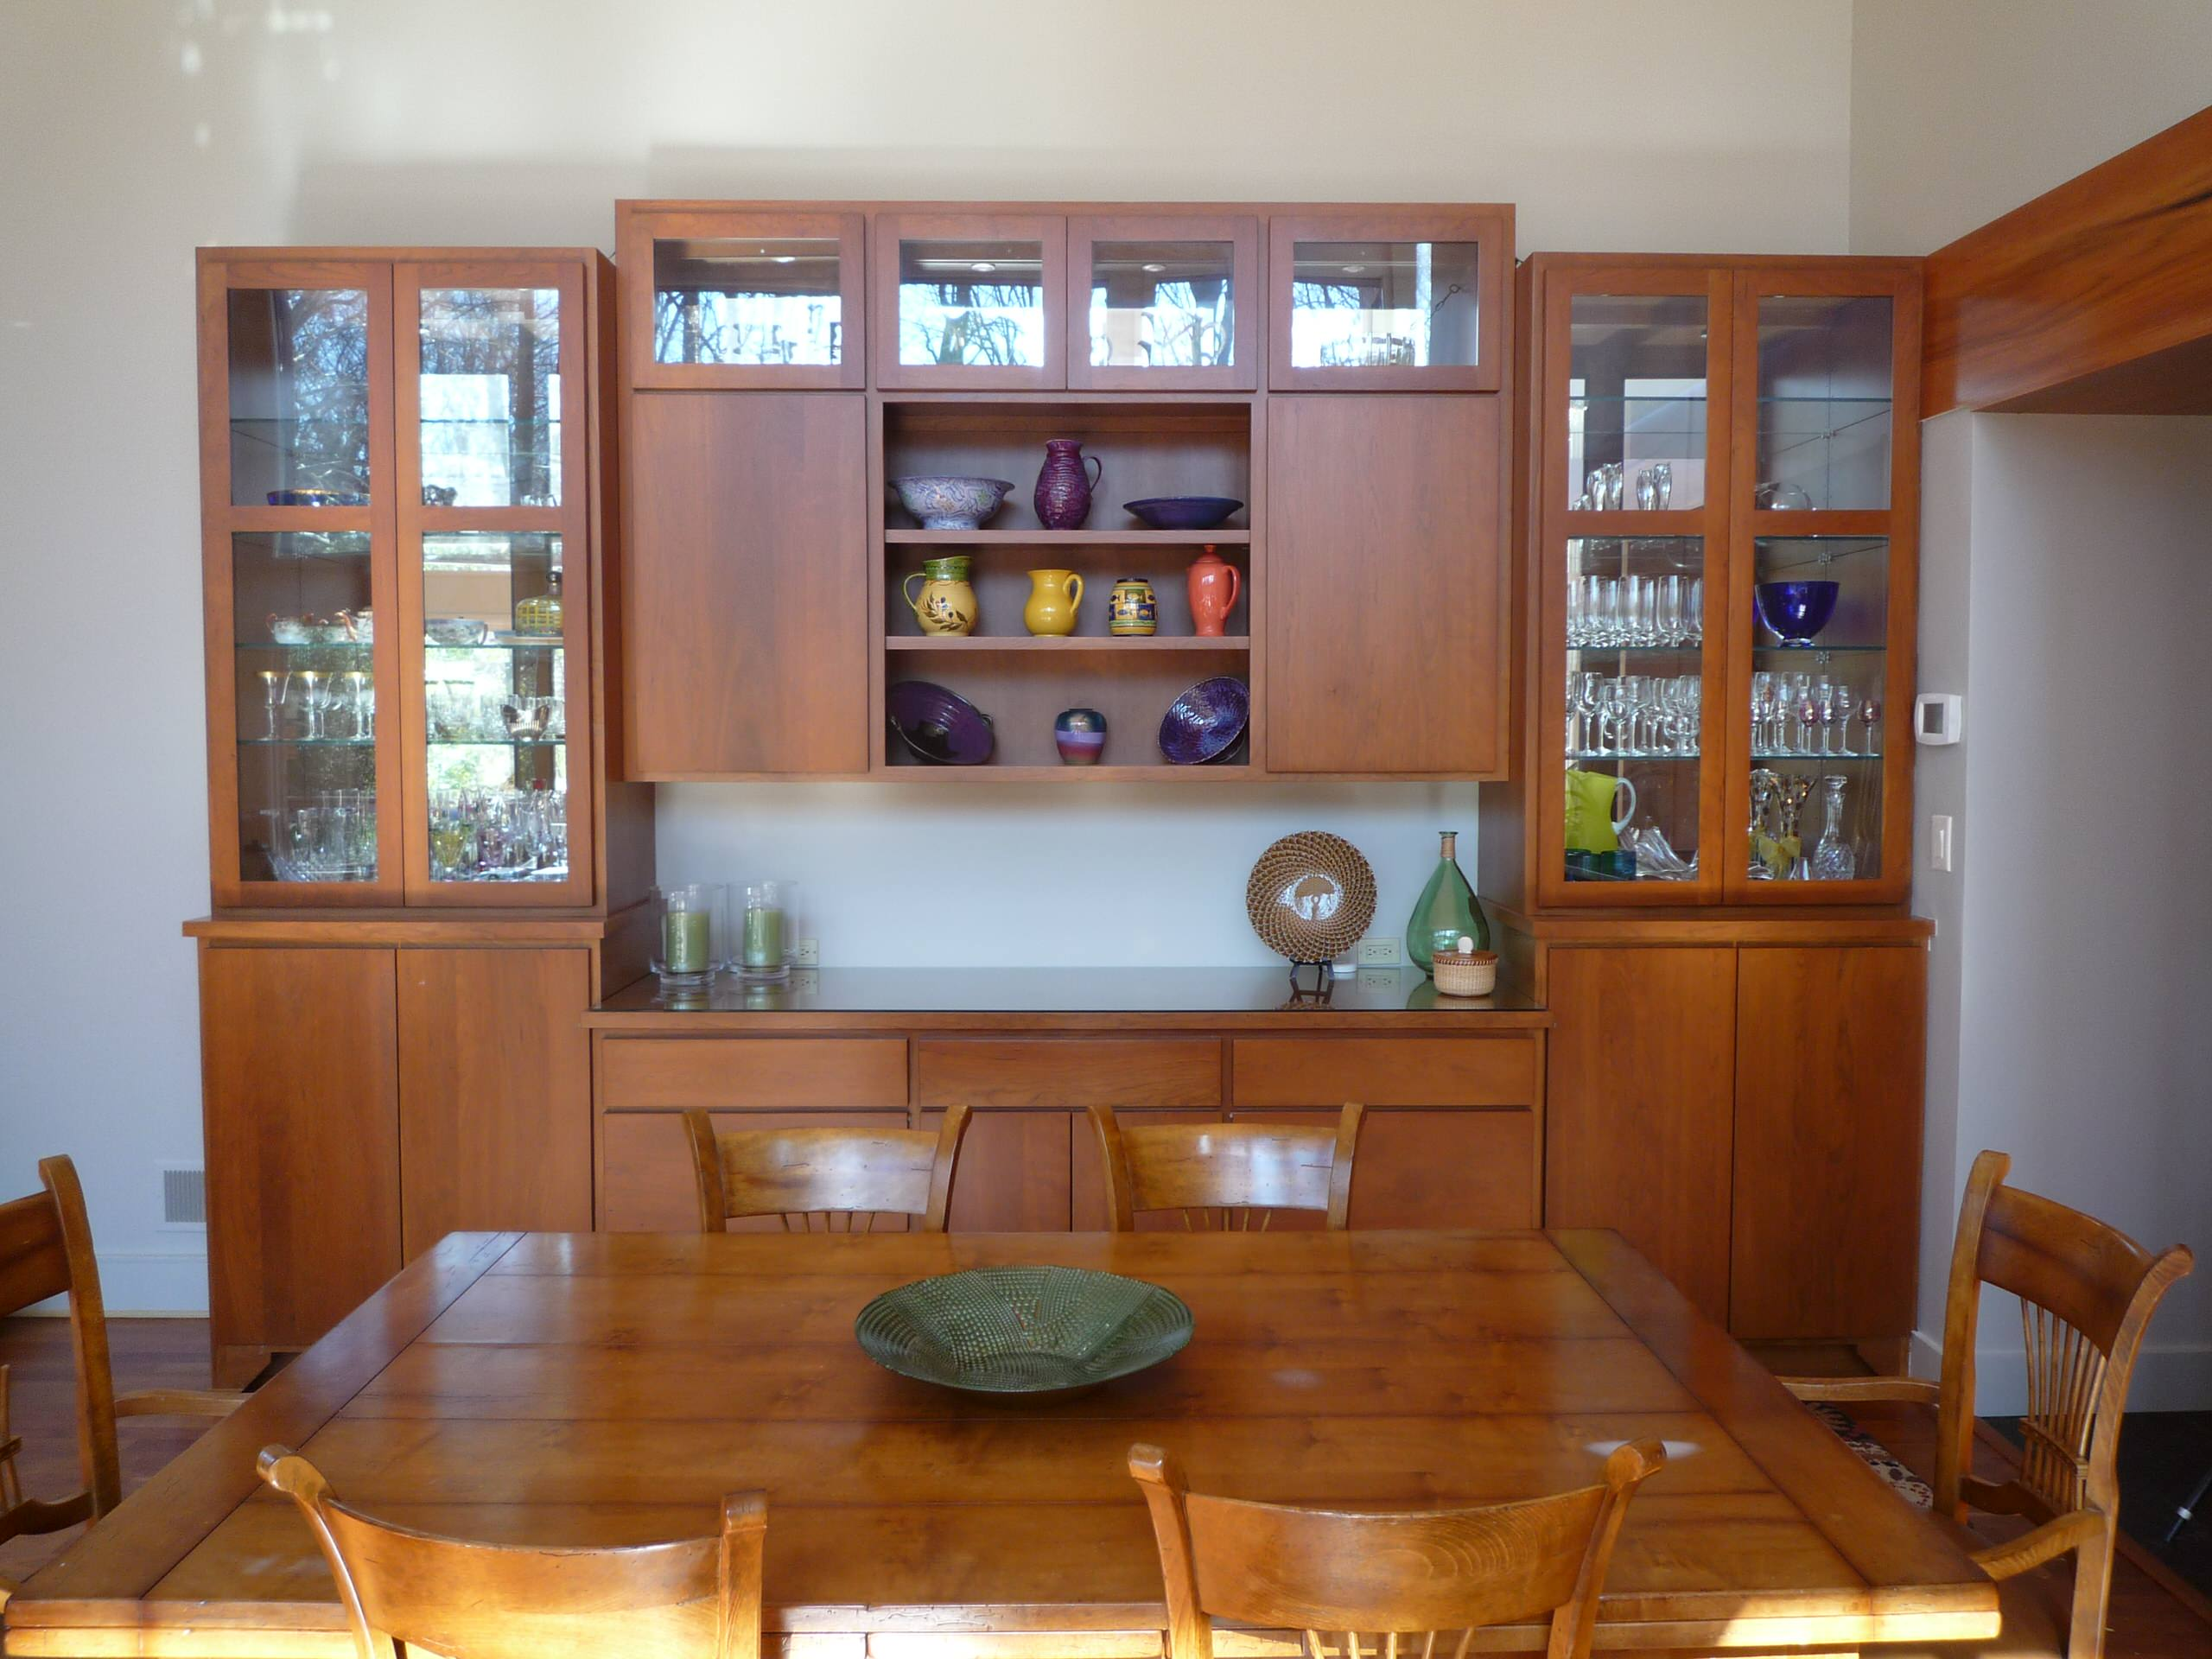 Contemporay, cherry, earthy, paneled ceiling kitchen